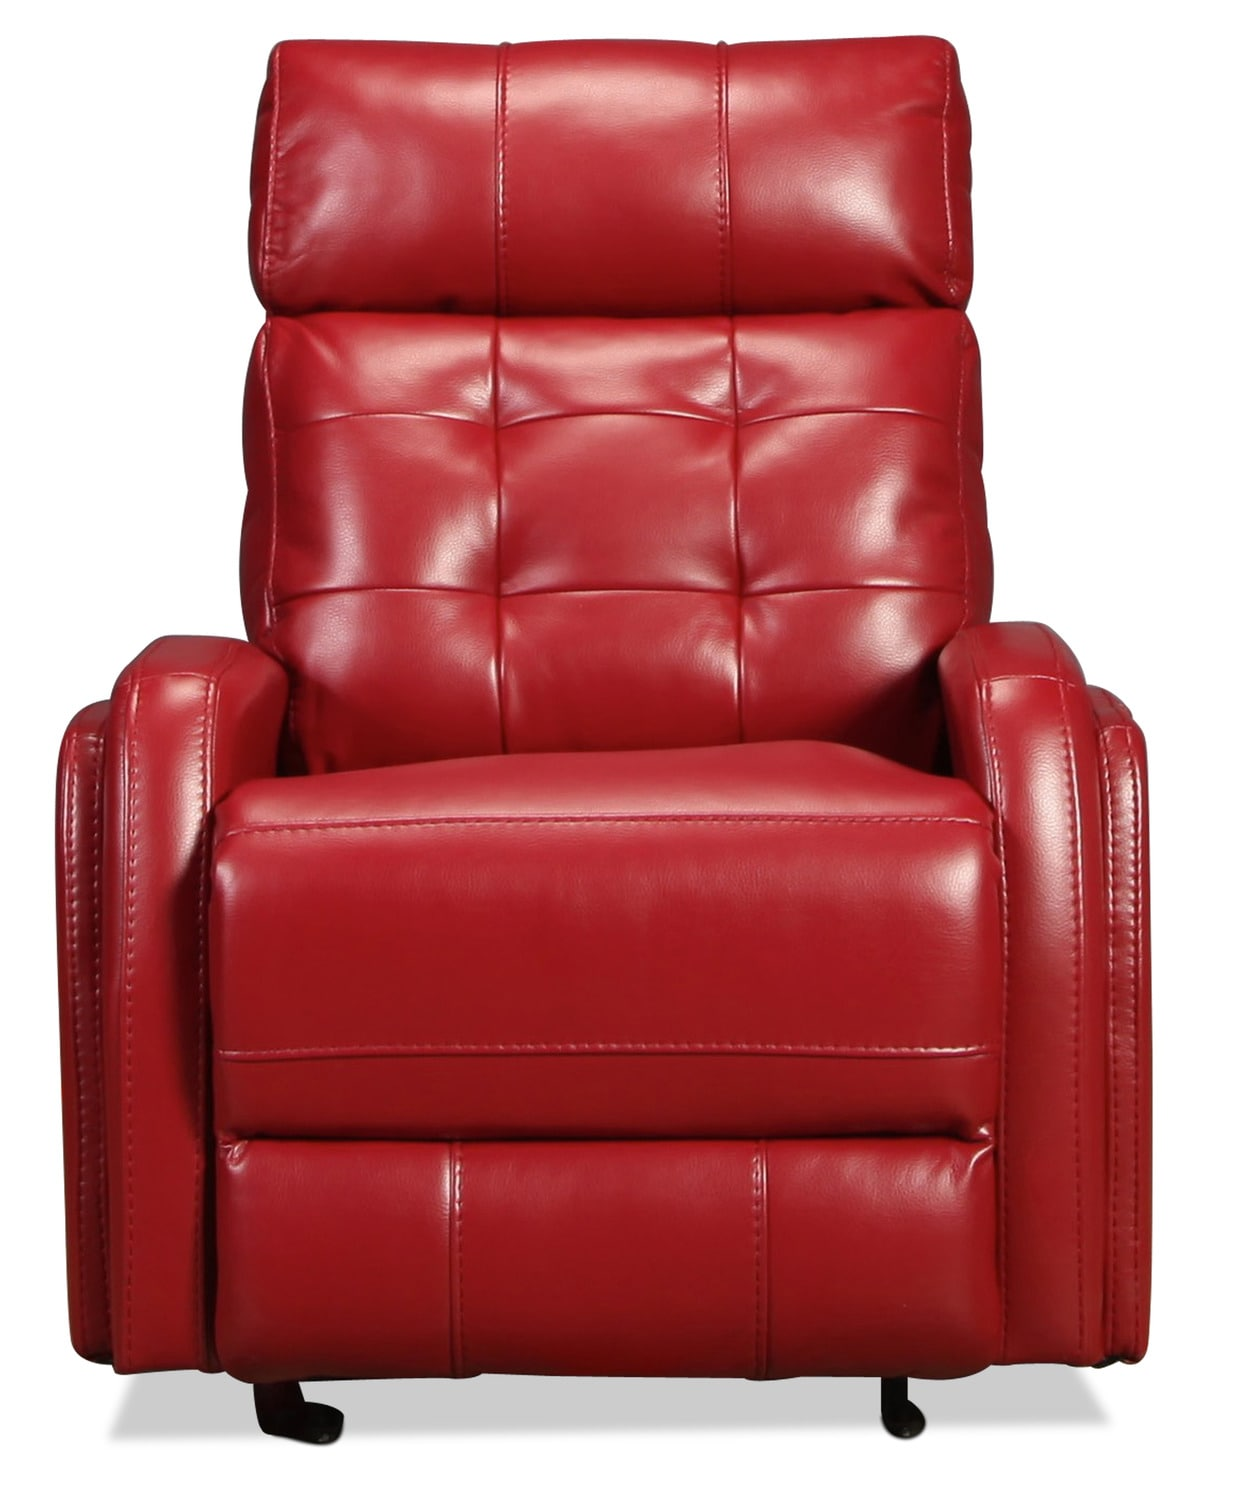 Living Room Furniture - Mace Power Recliner - Red